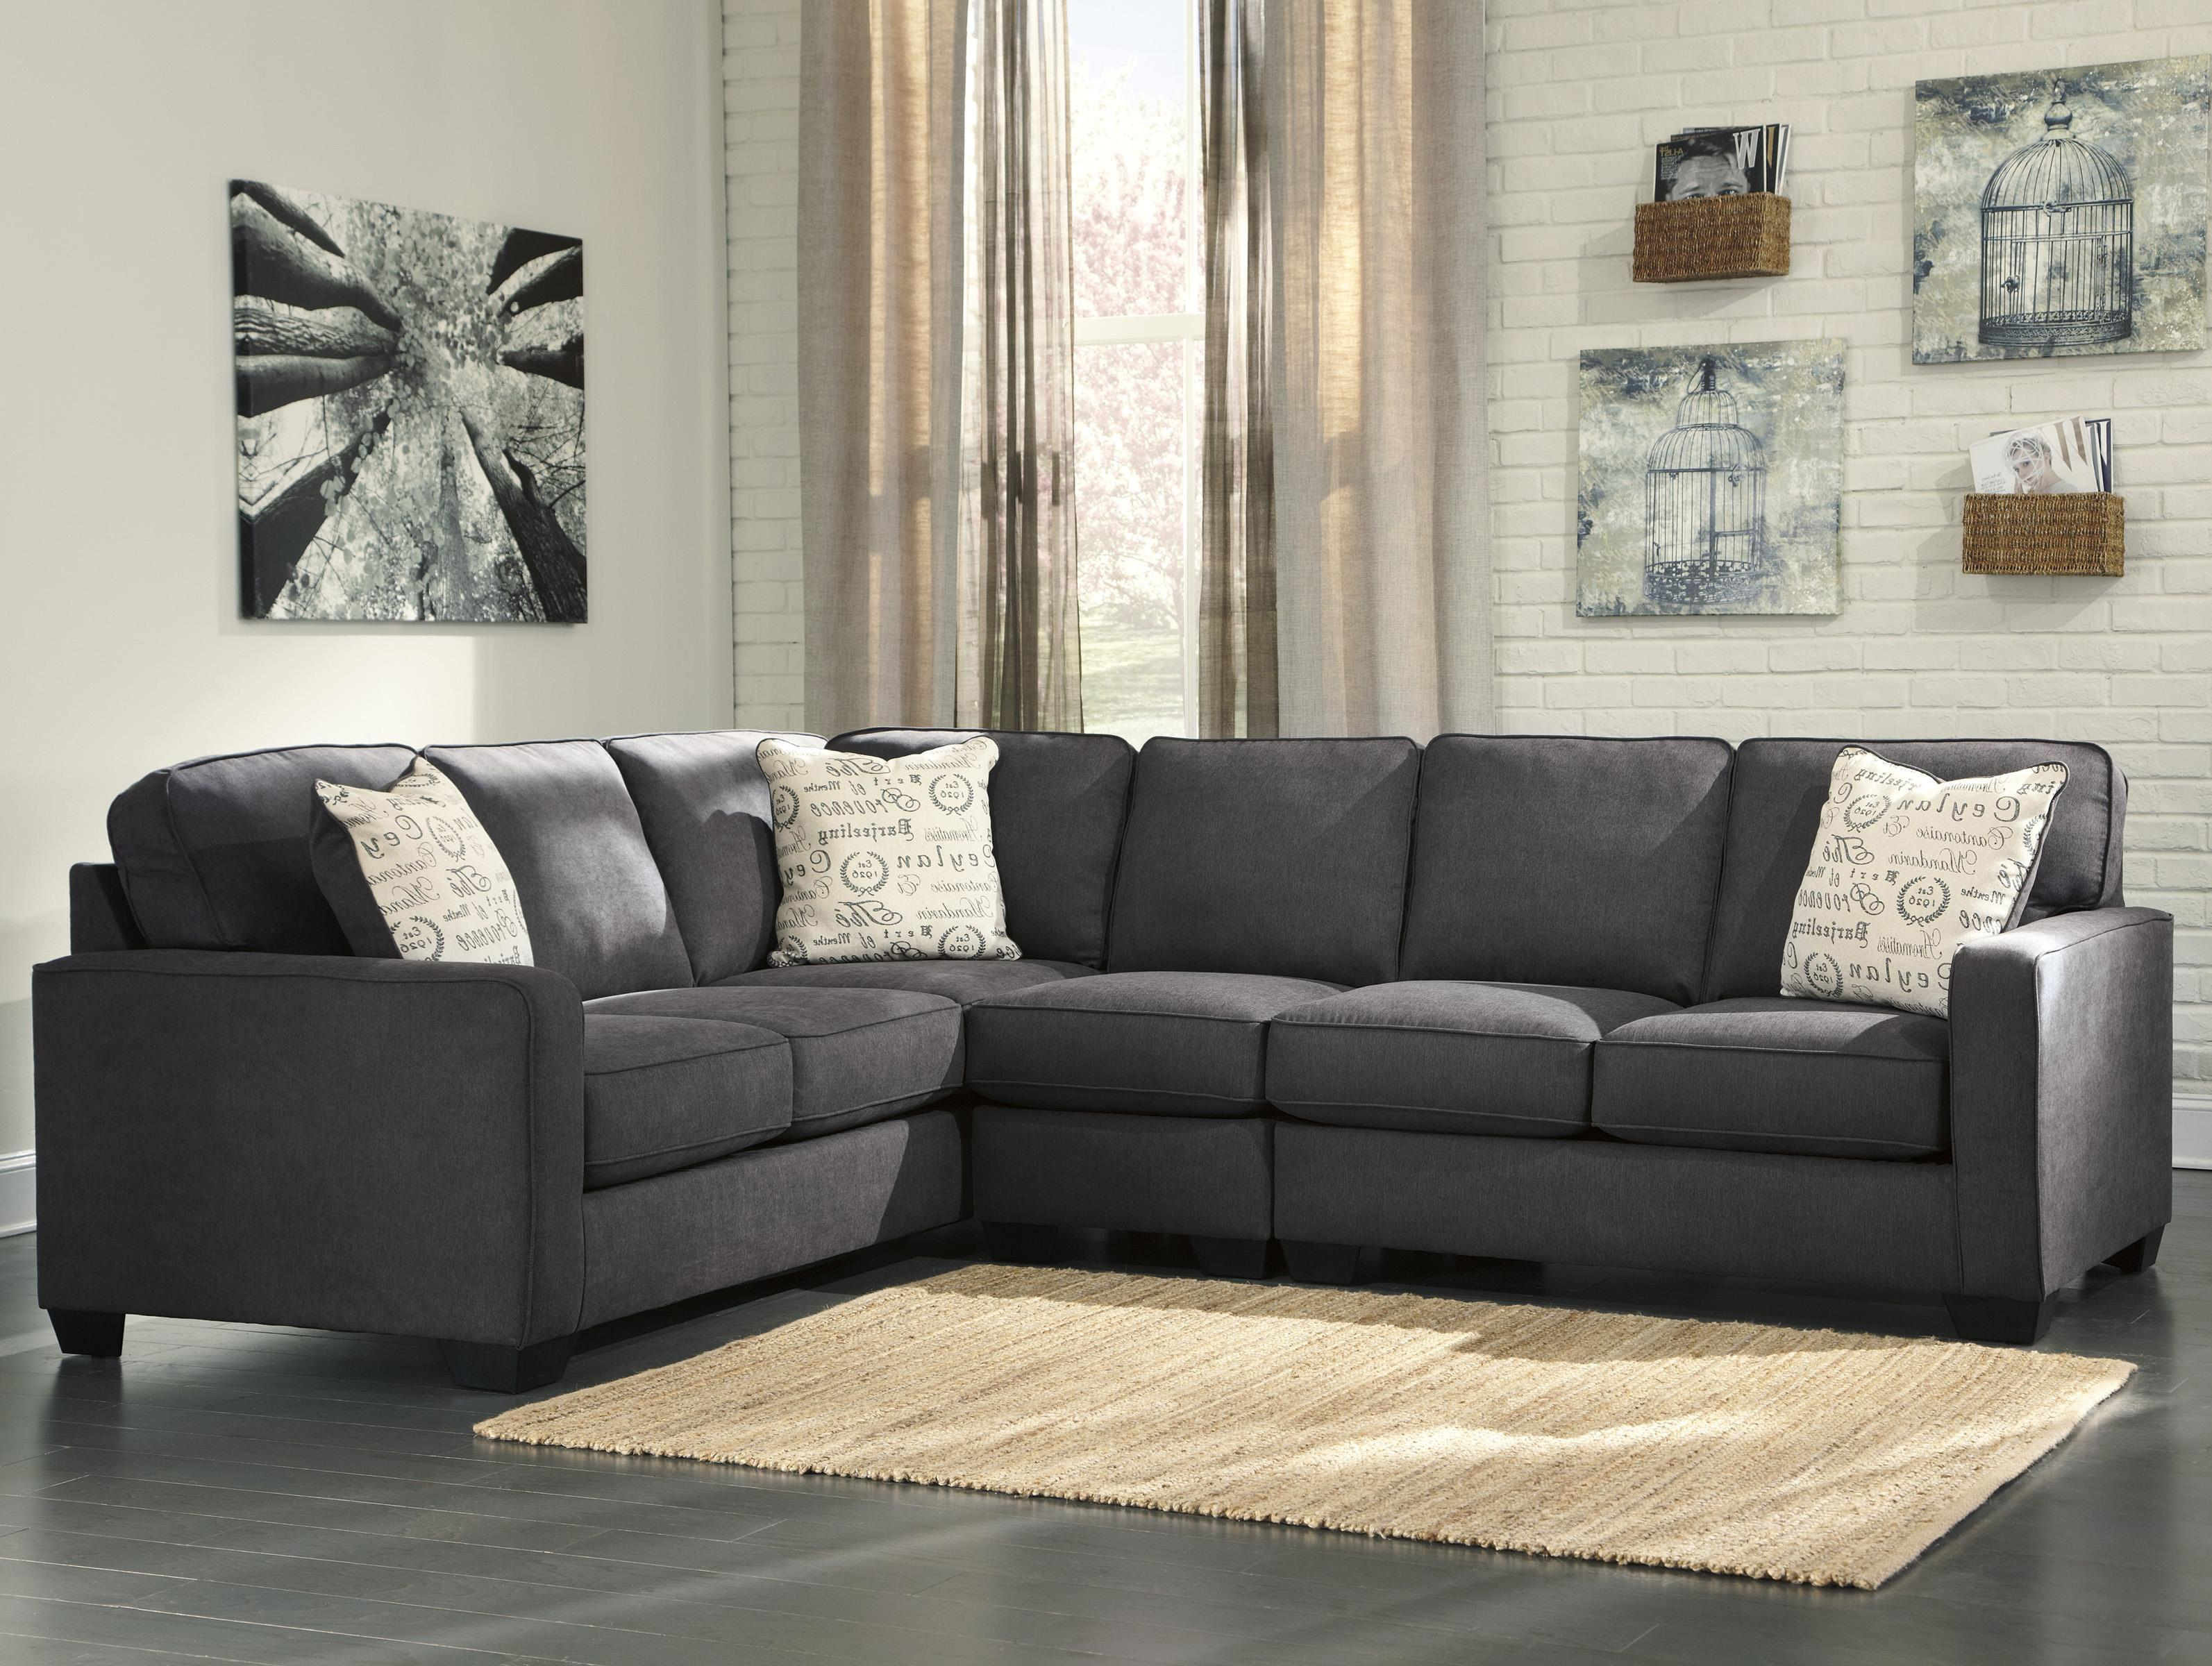 Alenya - Charcoal 3-Piece Sectional with Right Loveseat by Signature Design by Ashley at Houston's Yuma Furniture